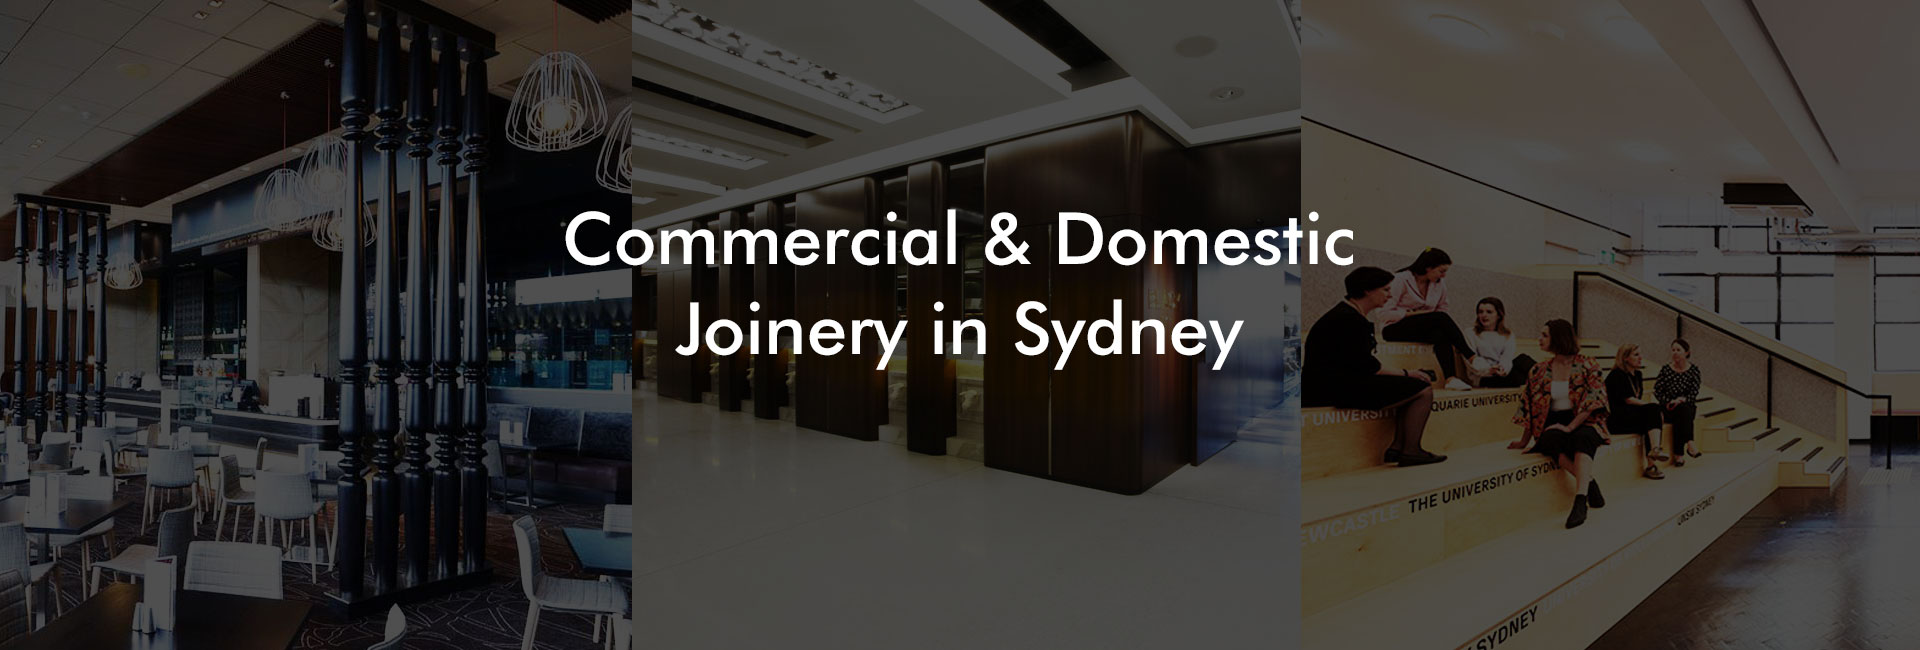 Commercial and Domestic Joinery in Sydney